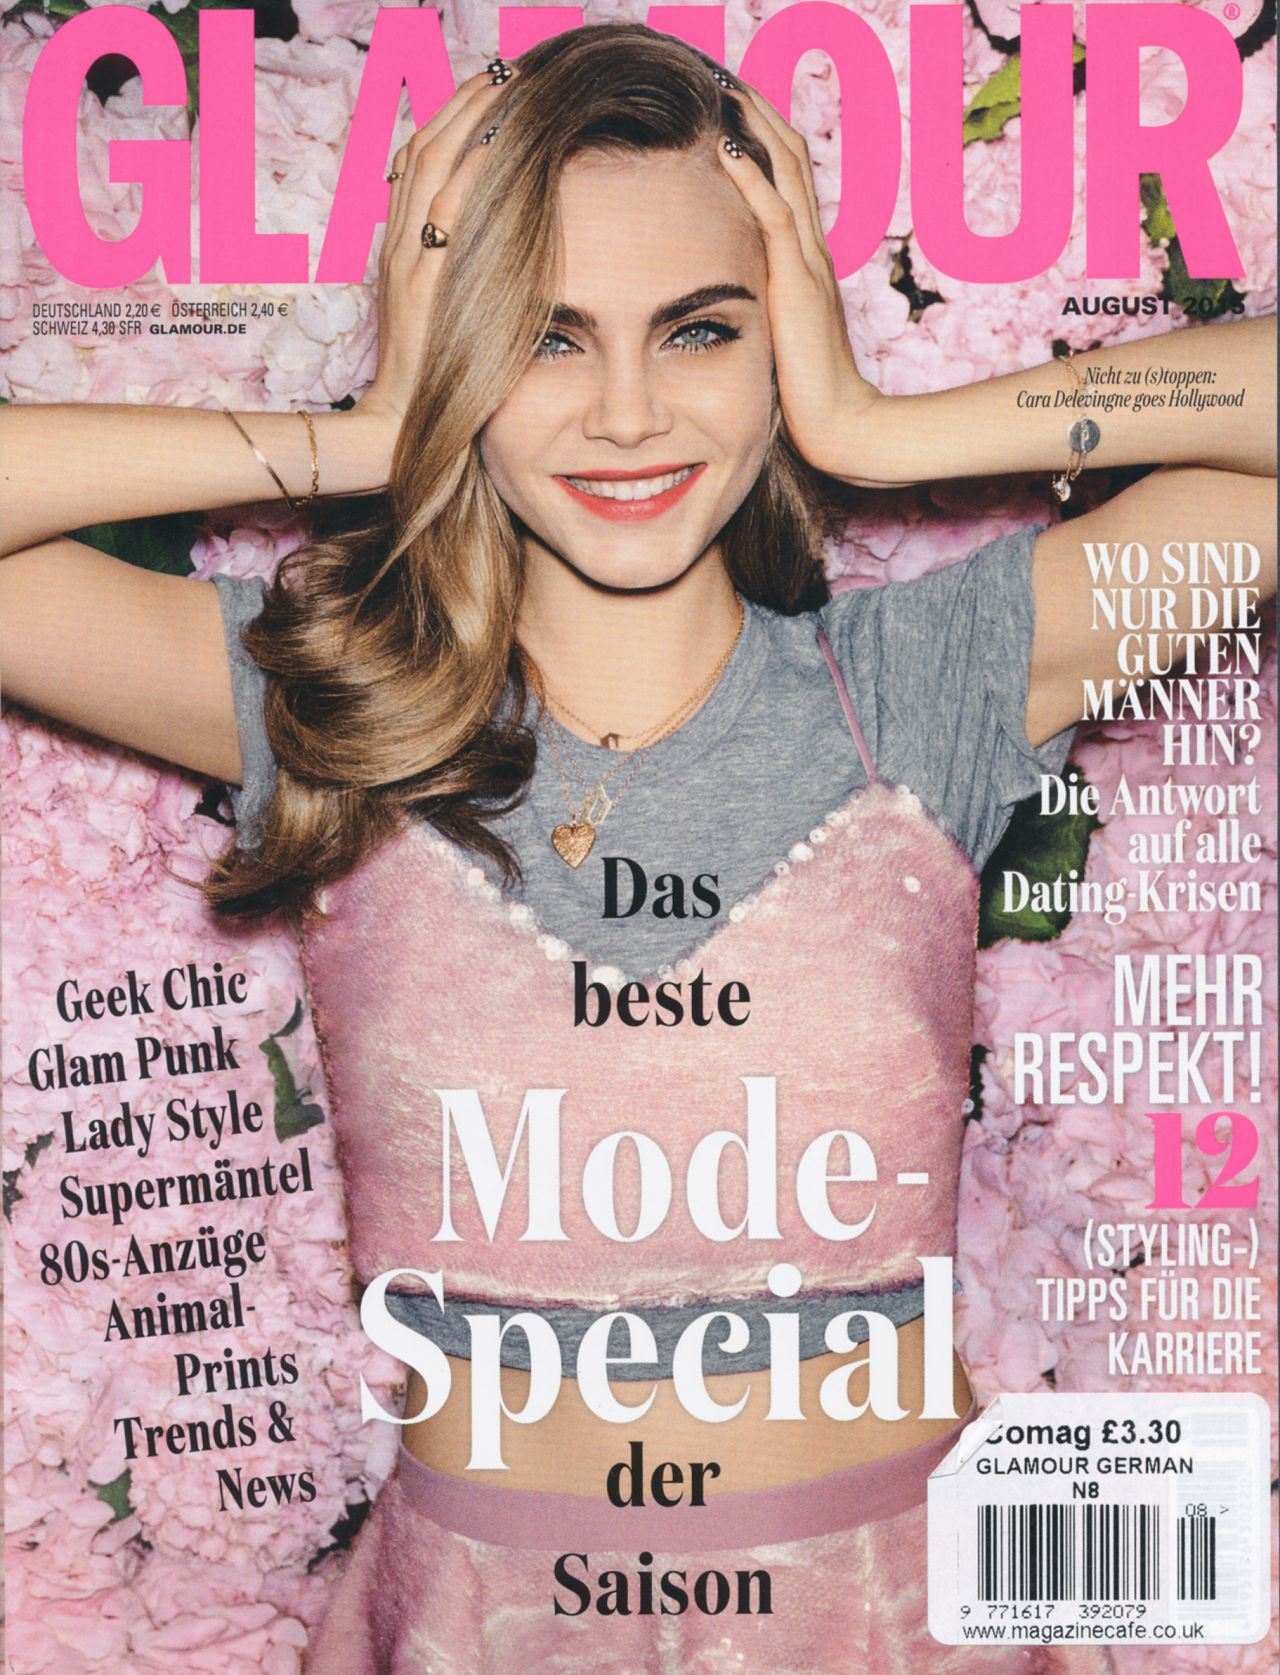 Glamour Magazine Germany August 2015 Issue